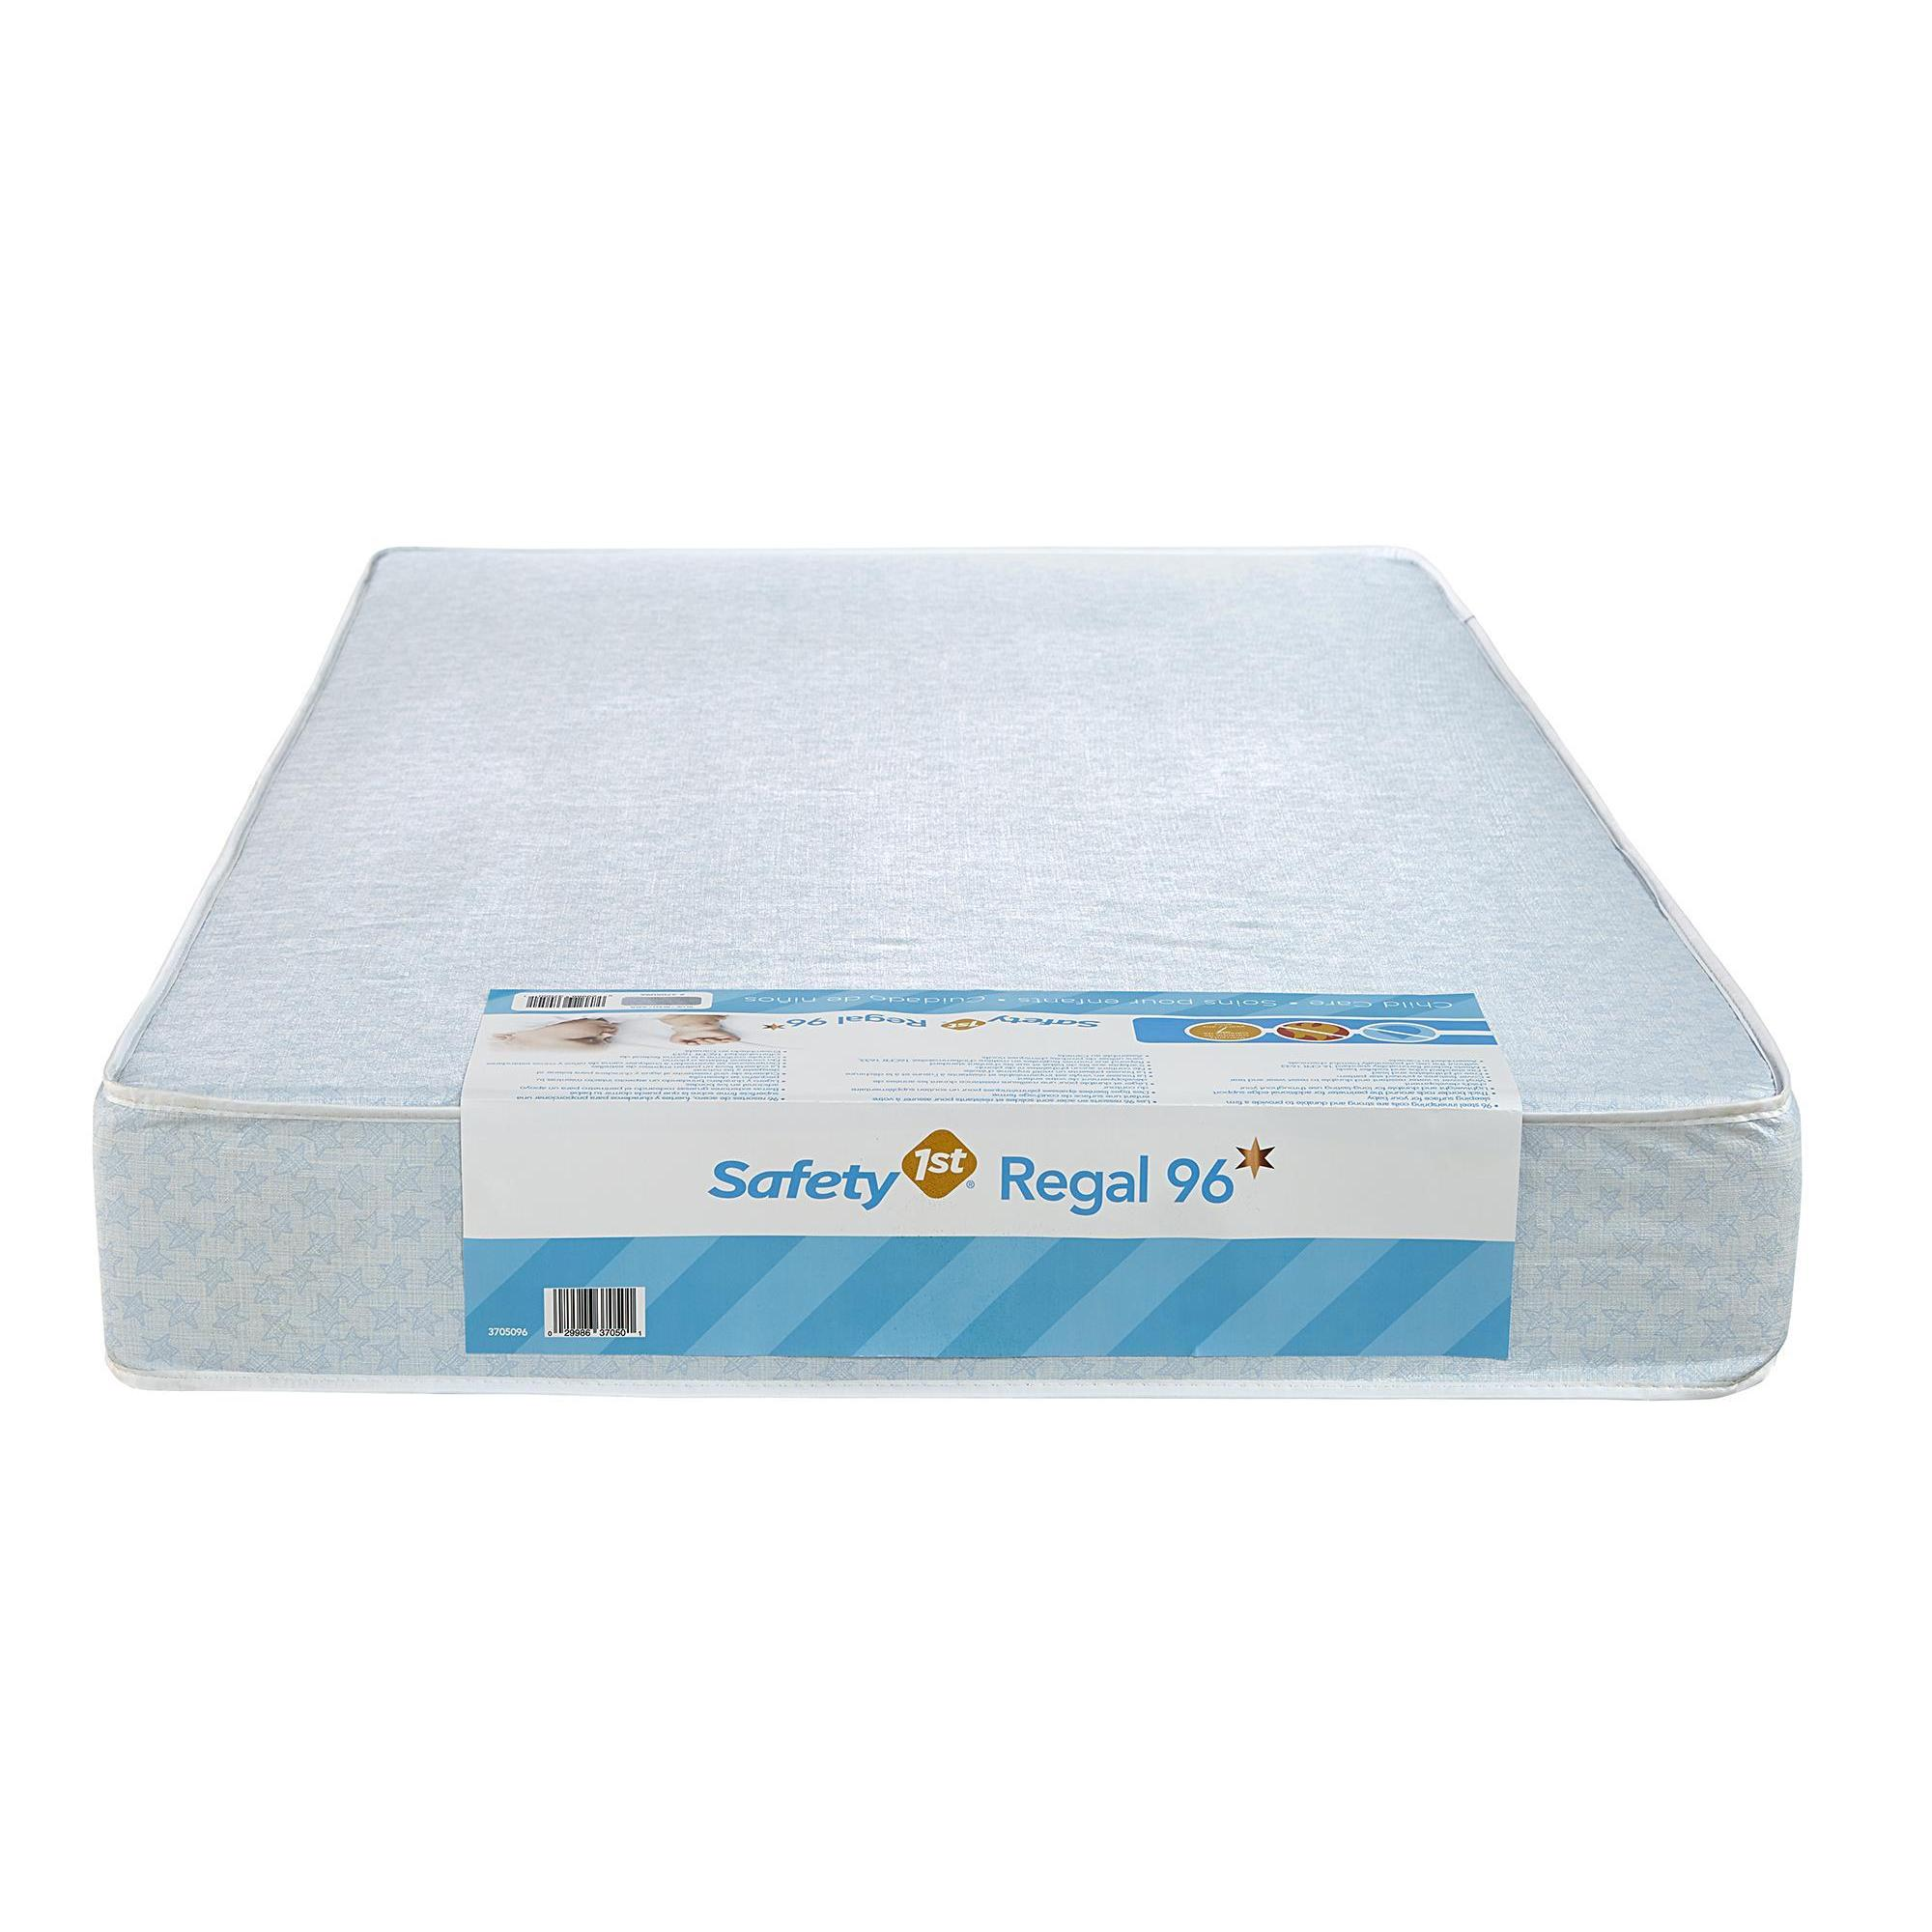 Baby Regal Dhp Safety First Regal 96 Blue Baby Mattress